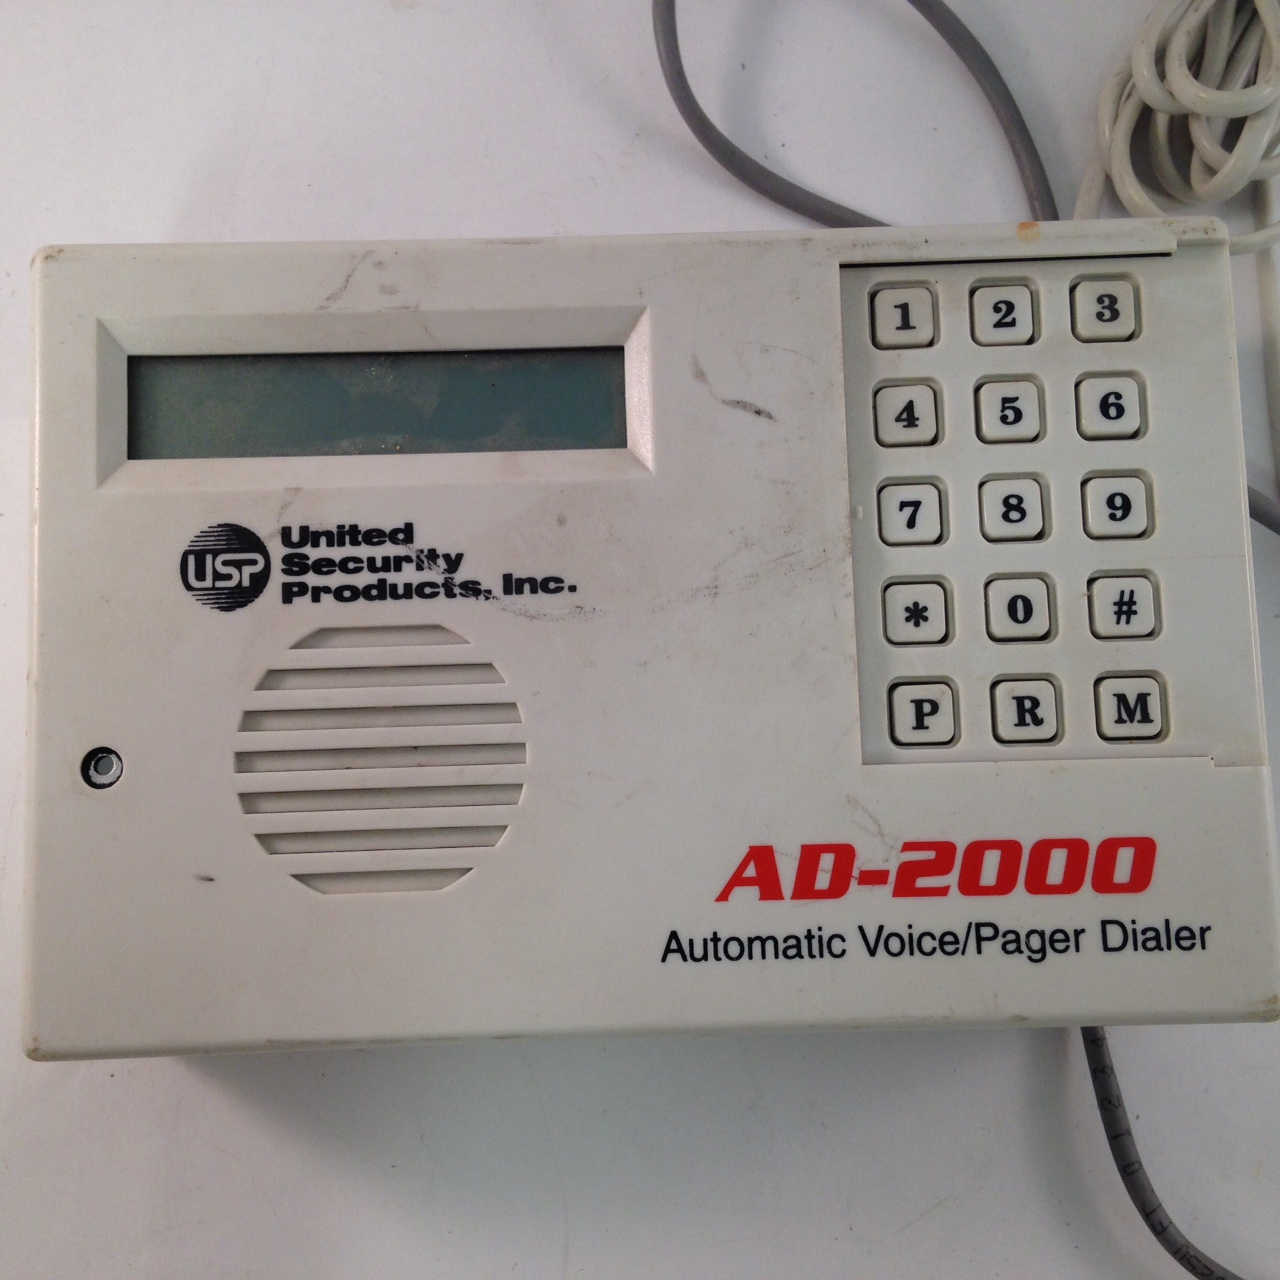 United Security Products AD-2000 Automatic Voice/Pager Dialer